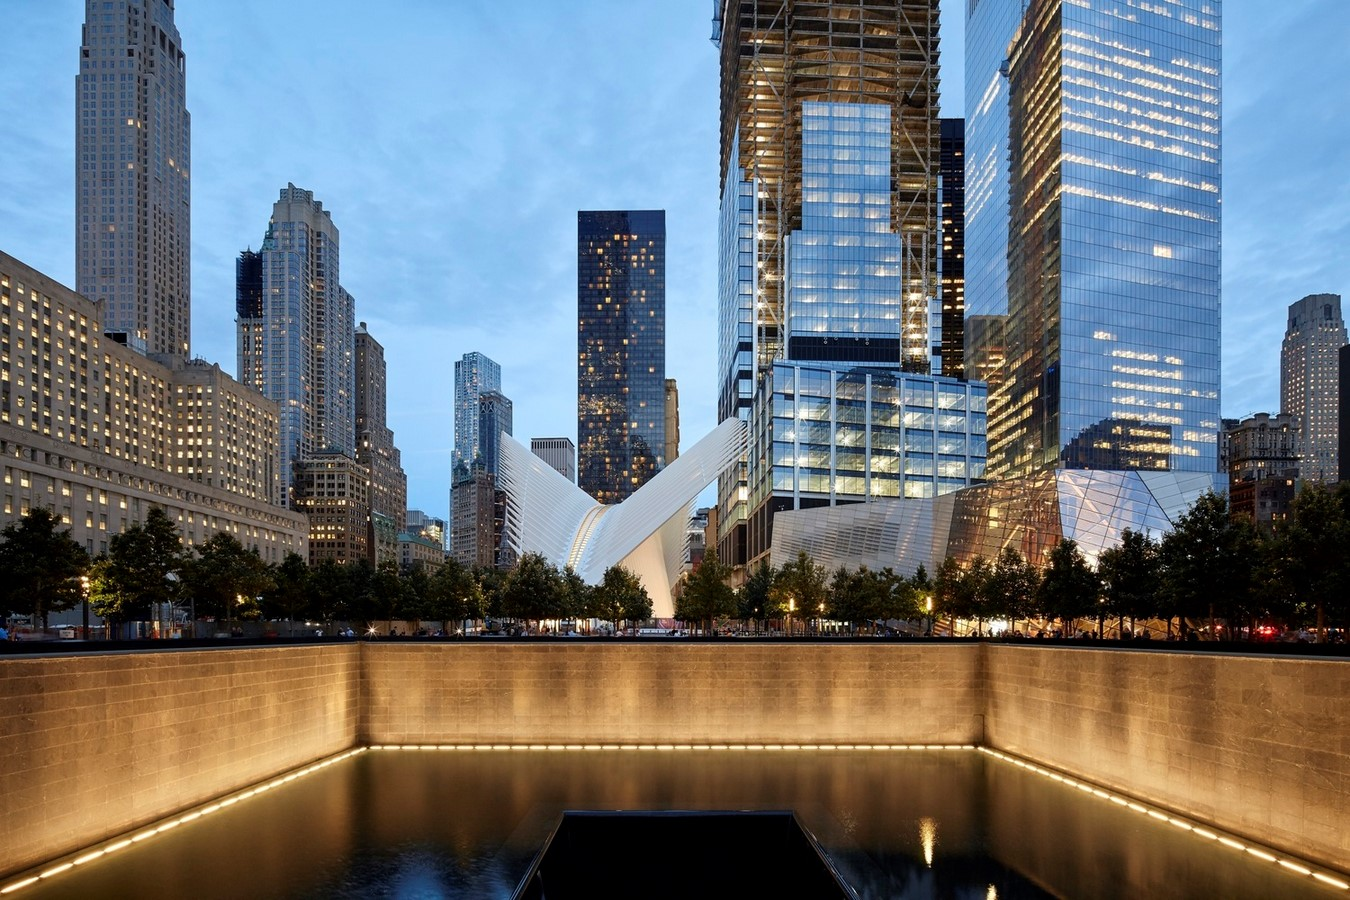 15 Facts about The Oculus NYC -Transportation Hub you didn't know - Sheet3